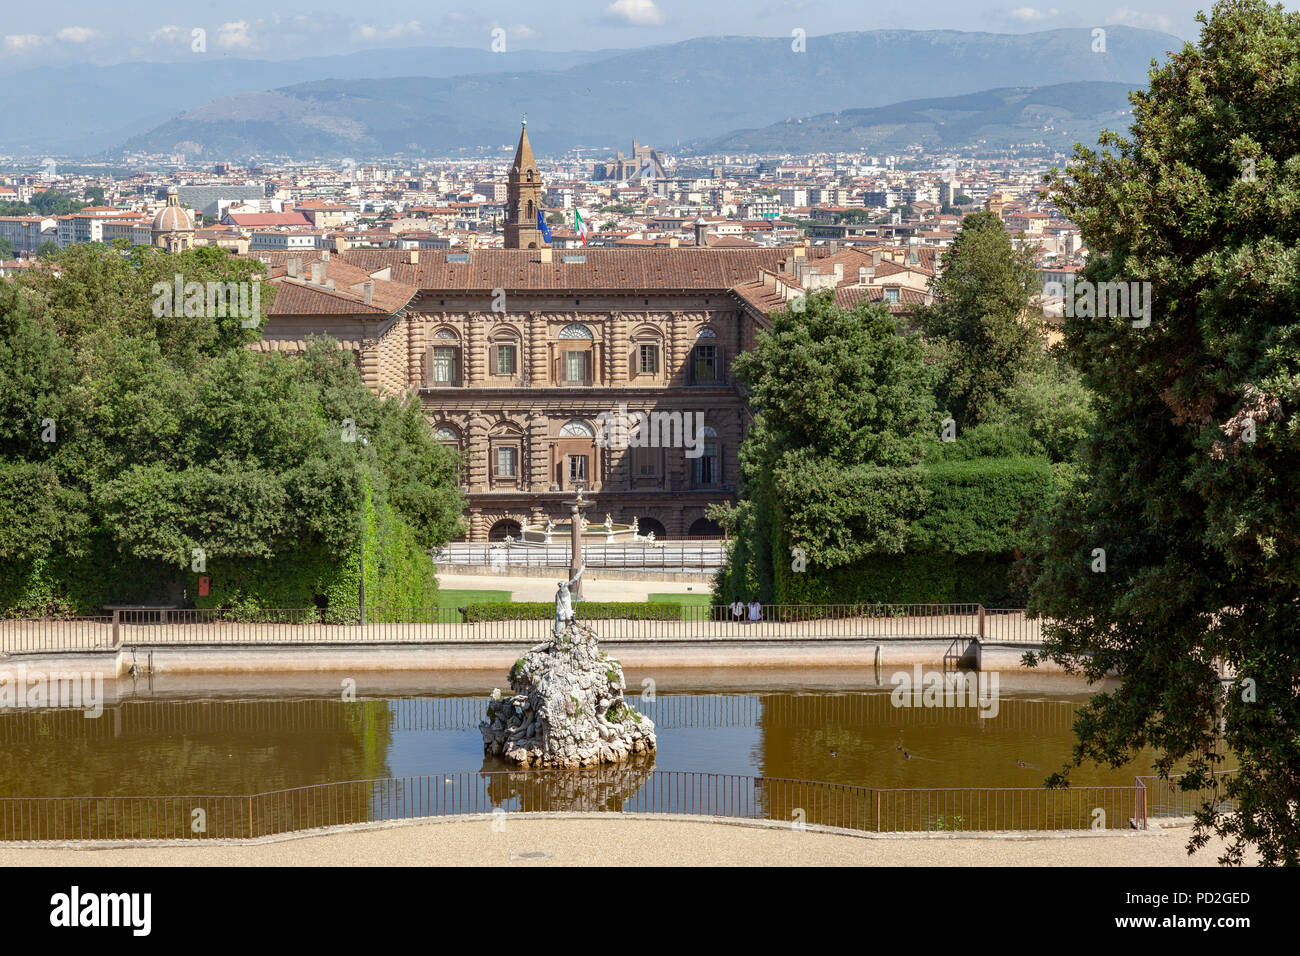 A photograph taken from the rear facade of the Pitti Palace above a draw level of the 'fountain of Neptune' platform. - Stock Image